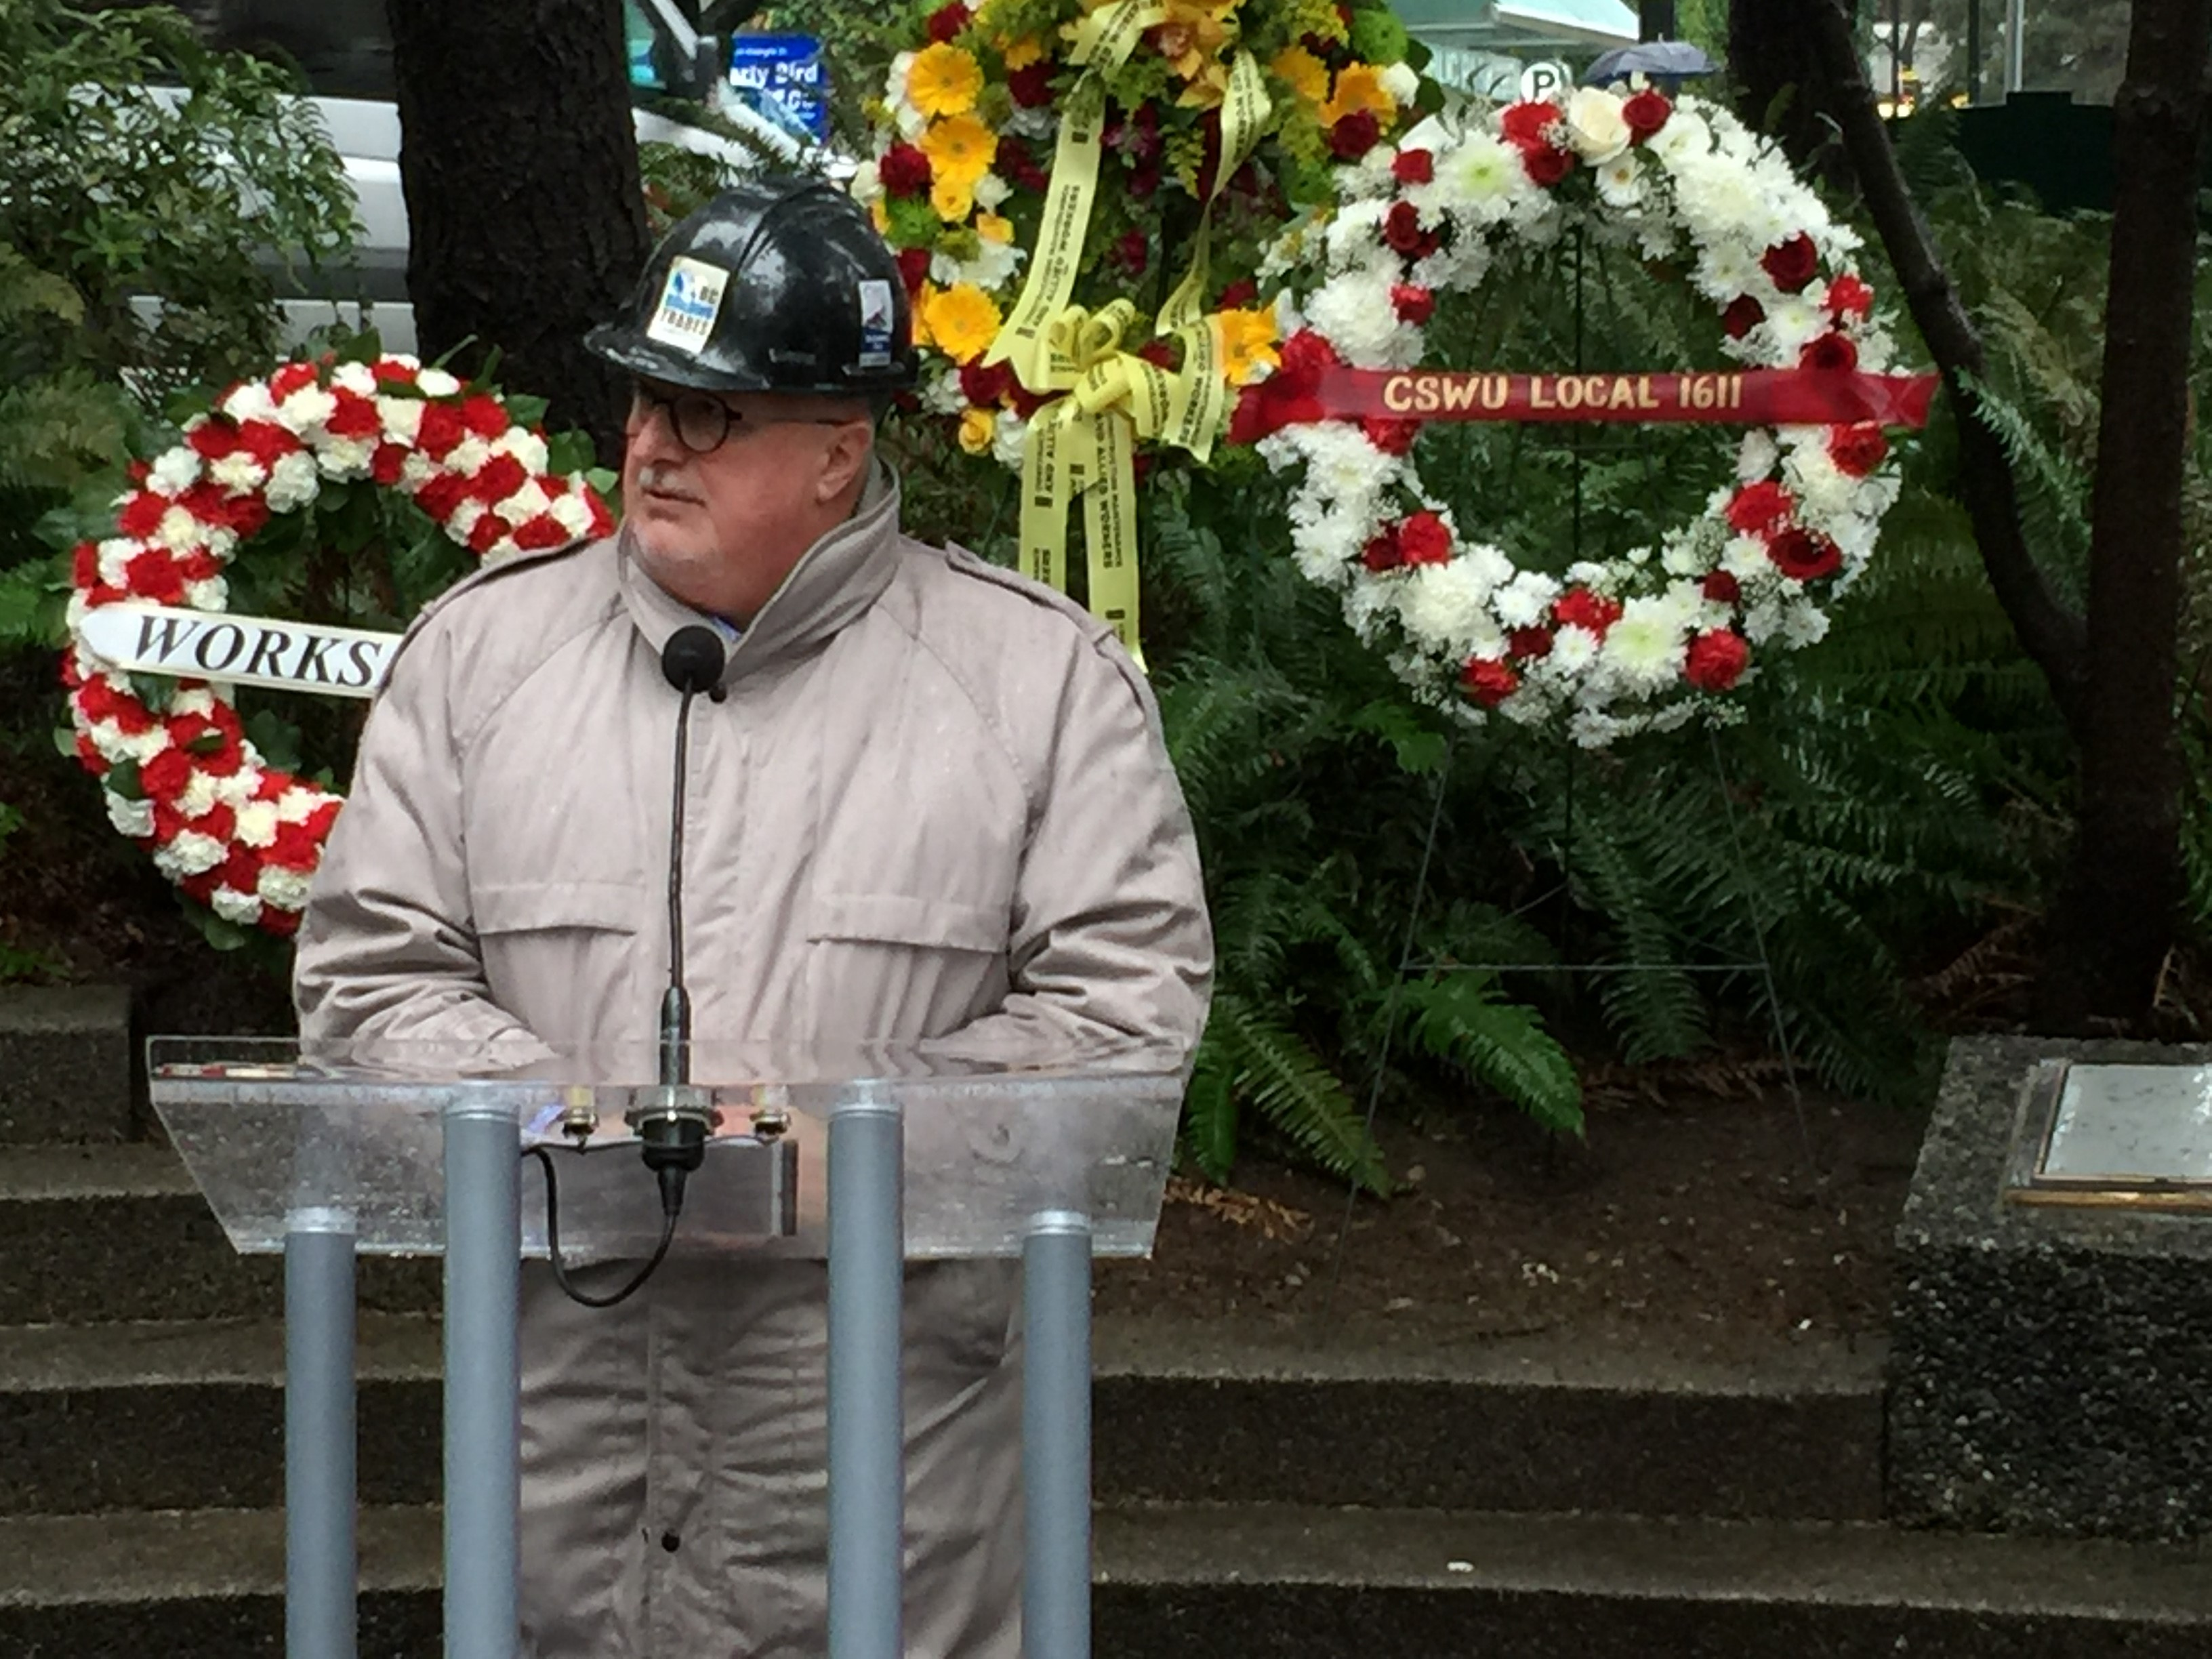 BC Building Trades executive director Tom Sigurdson hosted a memorial on Jan.8 to remember and honour those who died in the Bentall IV tower tragedy.